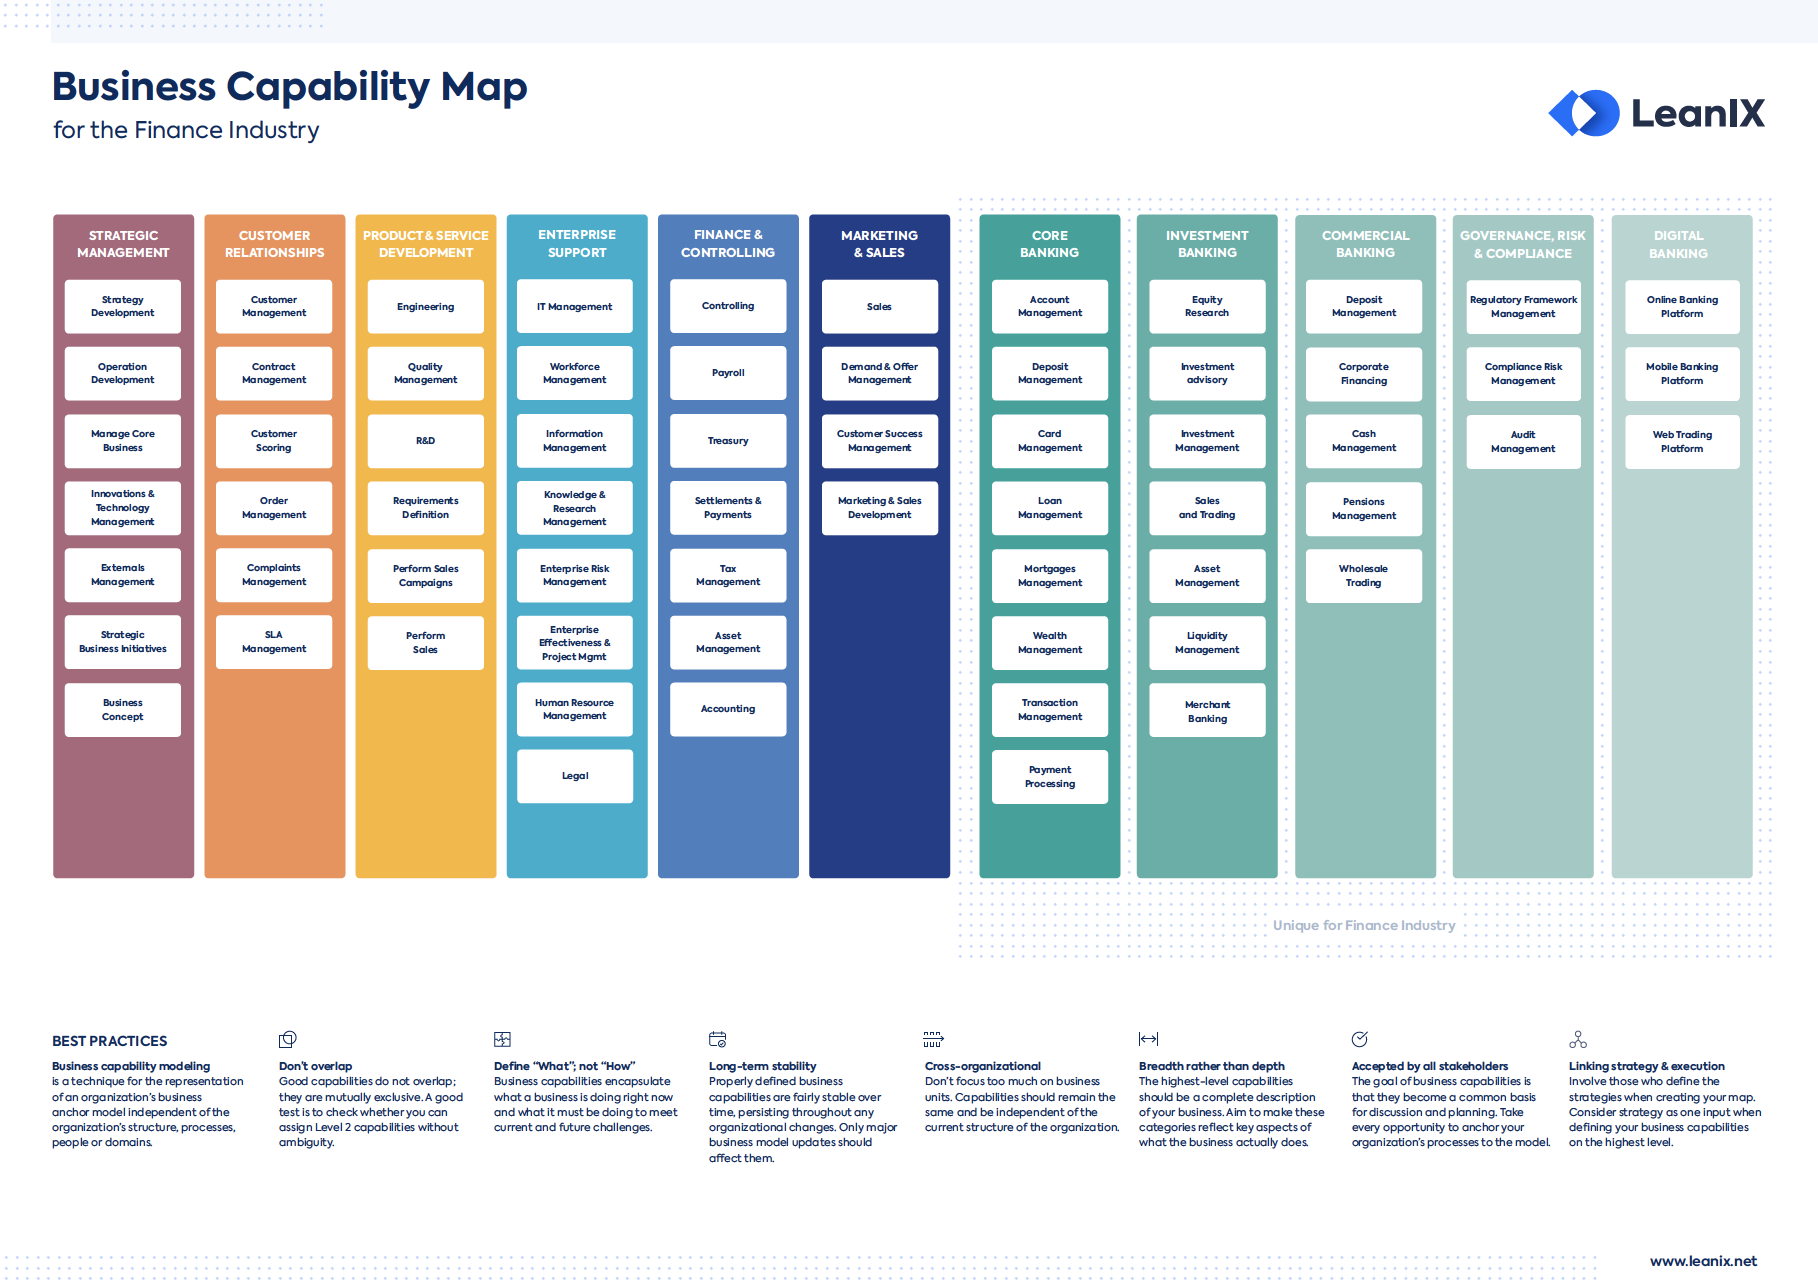 Best practices to define finance business capability maps